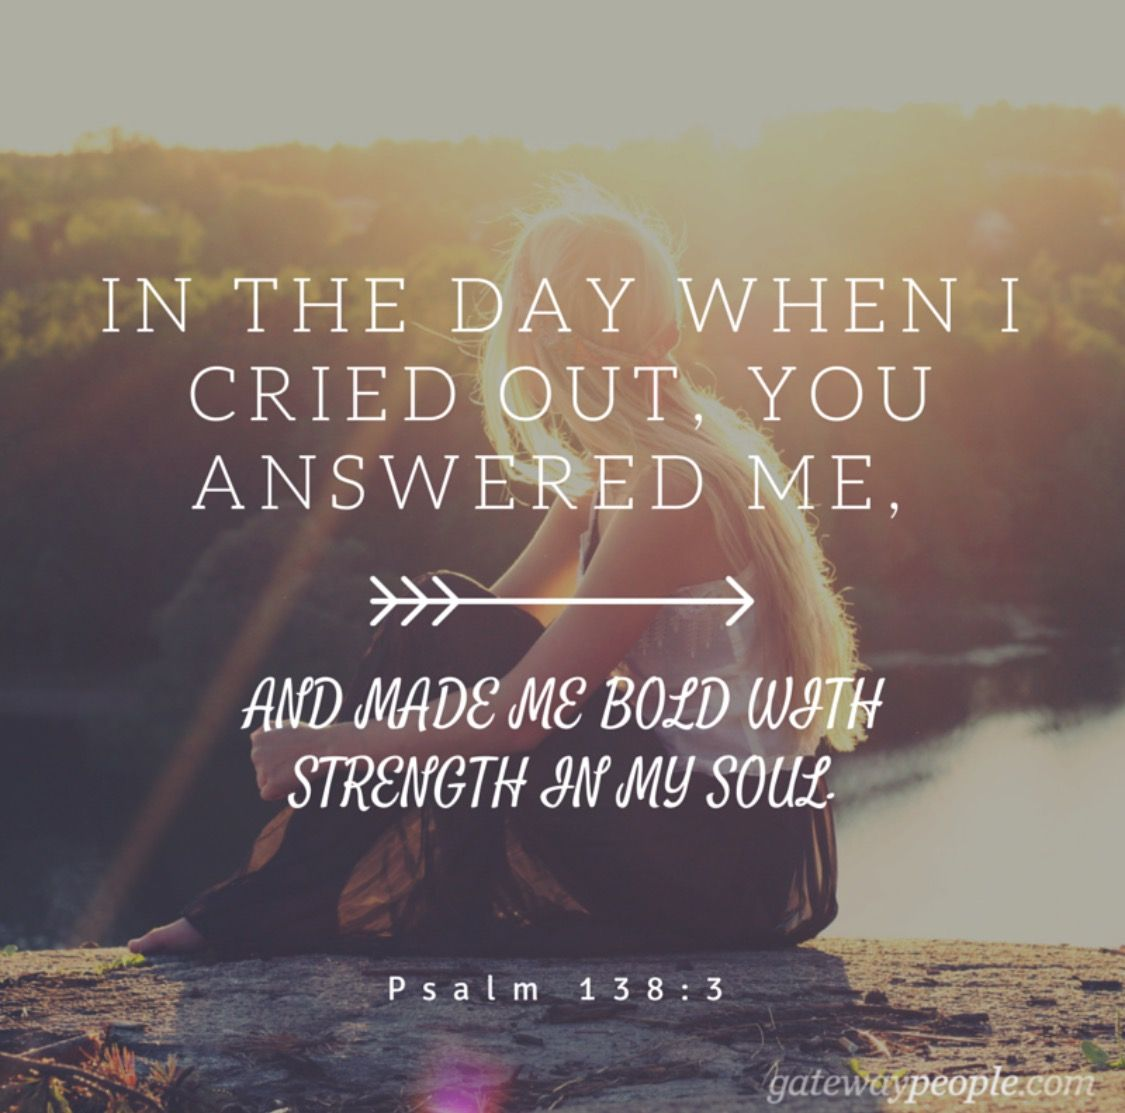 Psalm Quotes About Love In The Day I Cried Out You Answered Me  My Faith And Future